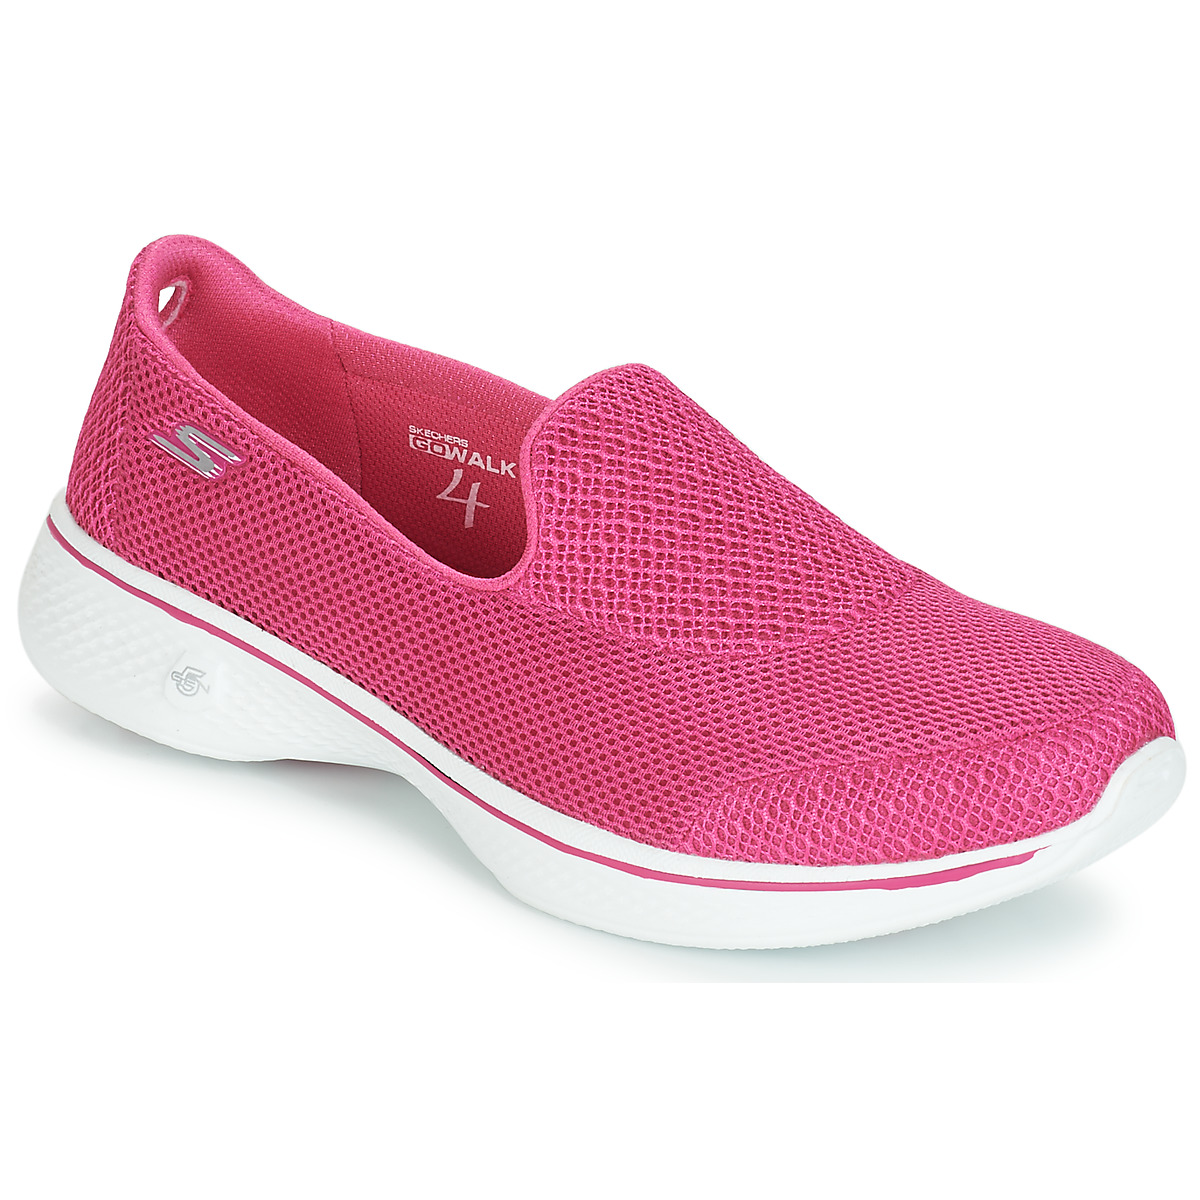 Skechers Slip-on GO Walk 4 Propel Skechers - Glami.sk 08900ef9c1e